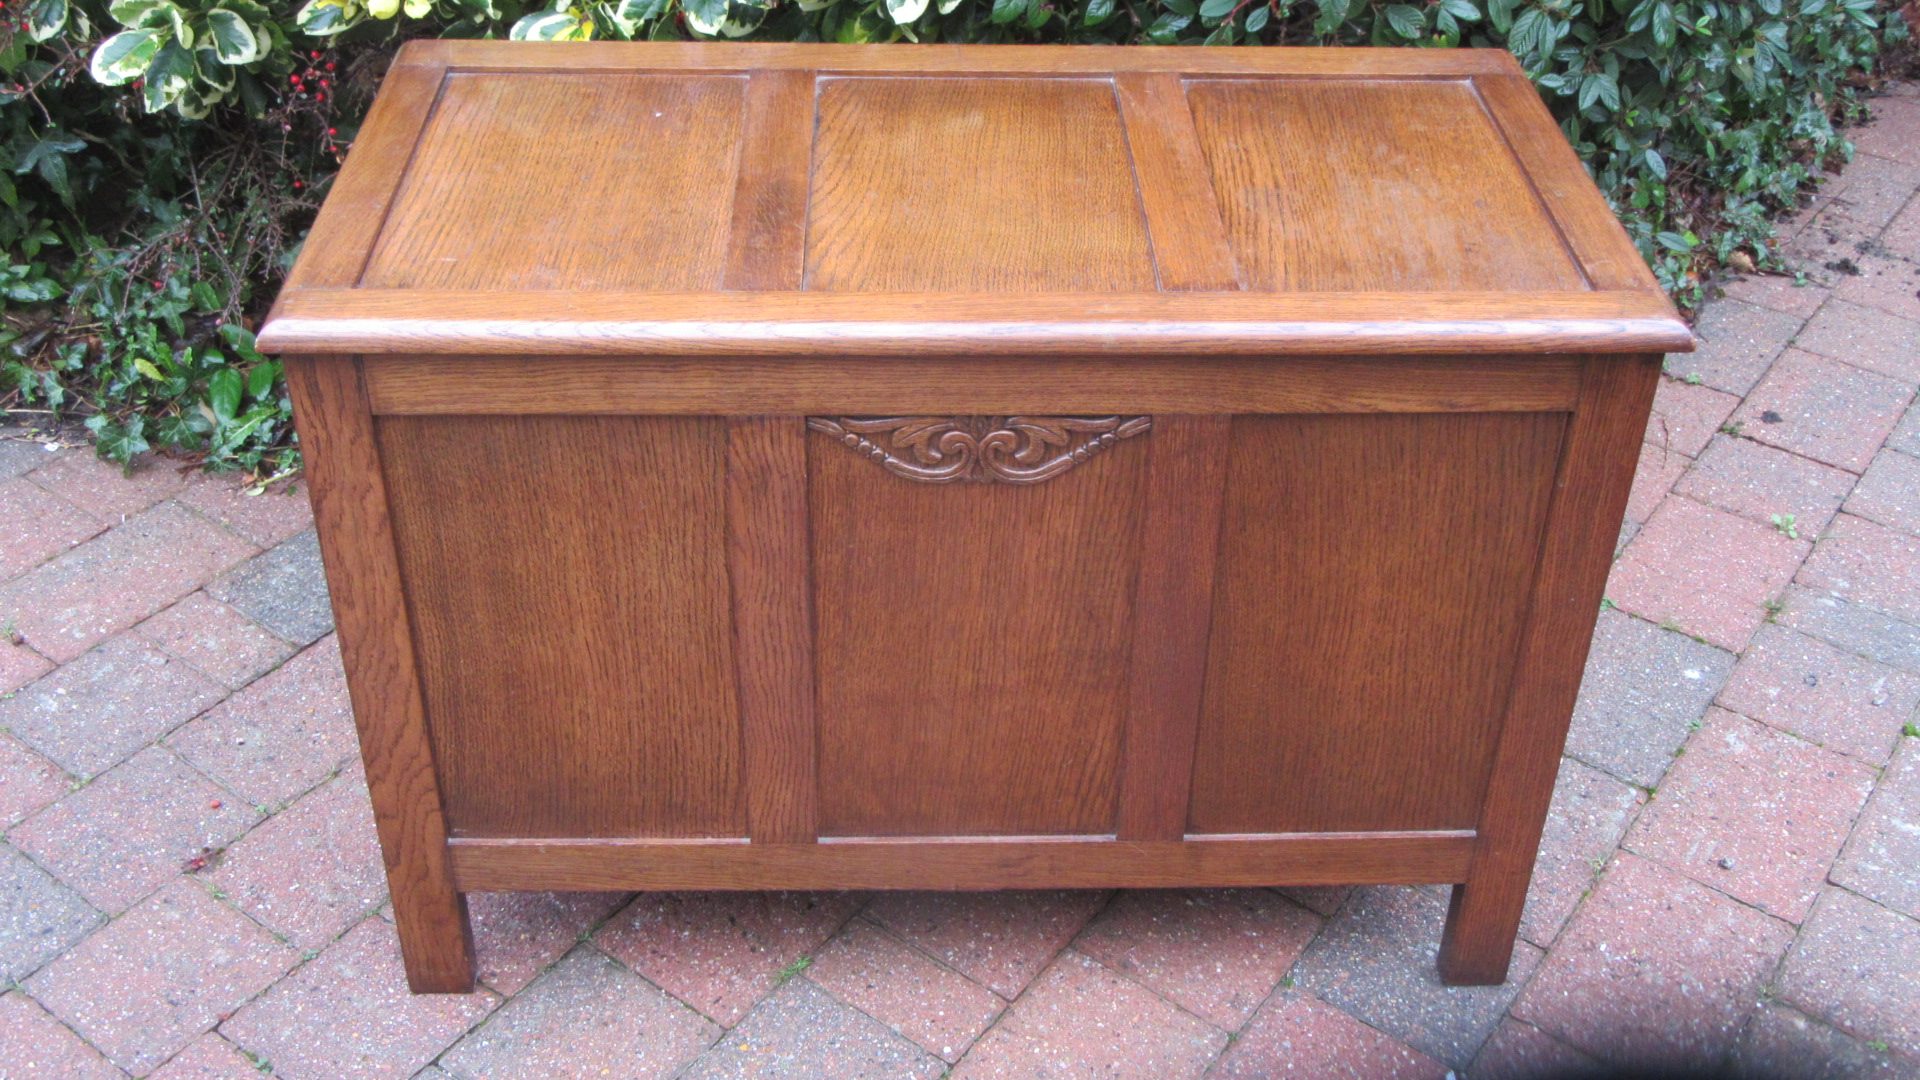 VINTAGE 1930S OAK BLANKET BOX